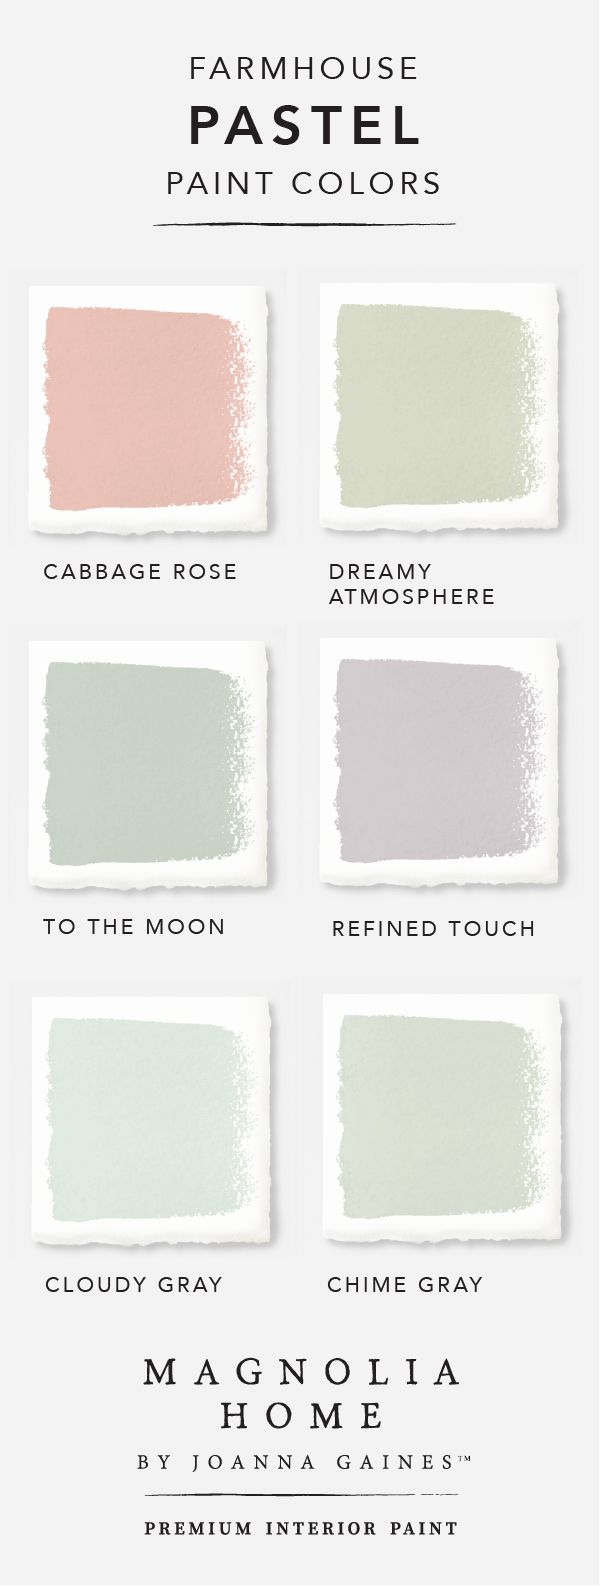 Bring a subtle pop of color into your home with this pastel color palette  from the Magnolia Home by Joanna GainesTM paint collection.